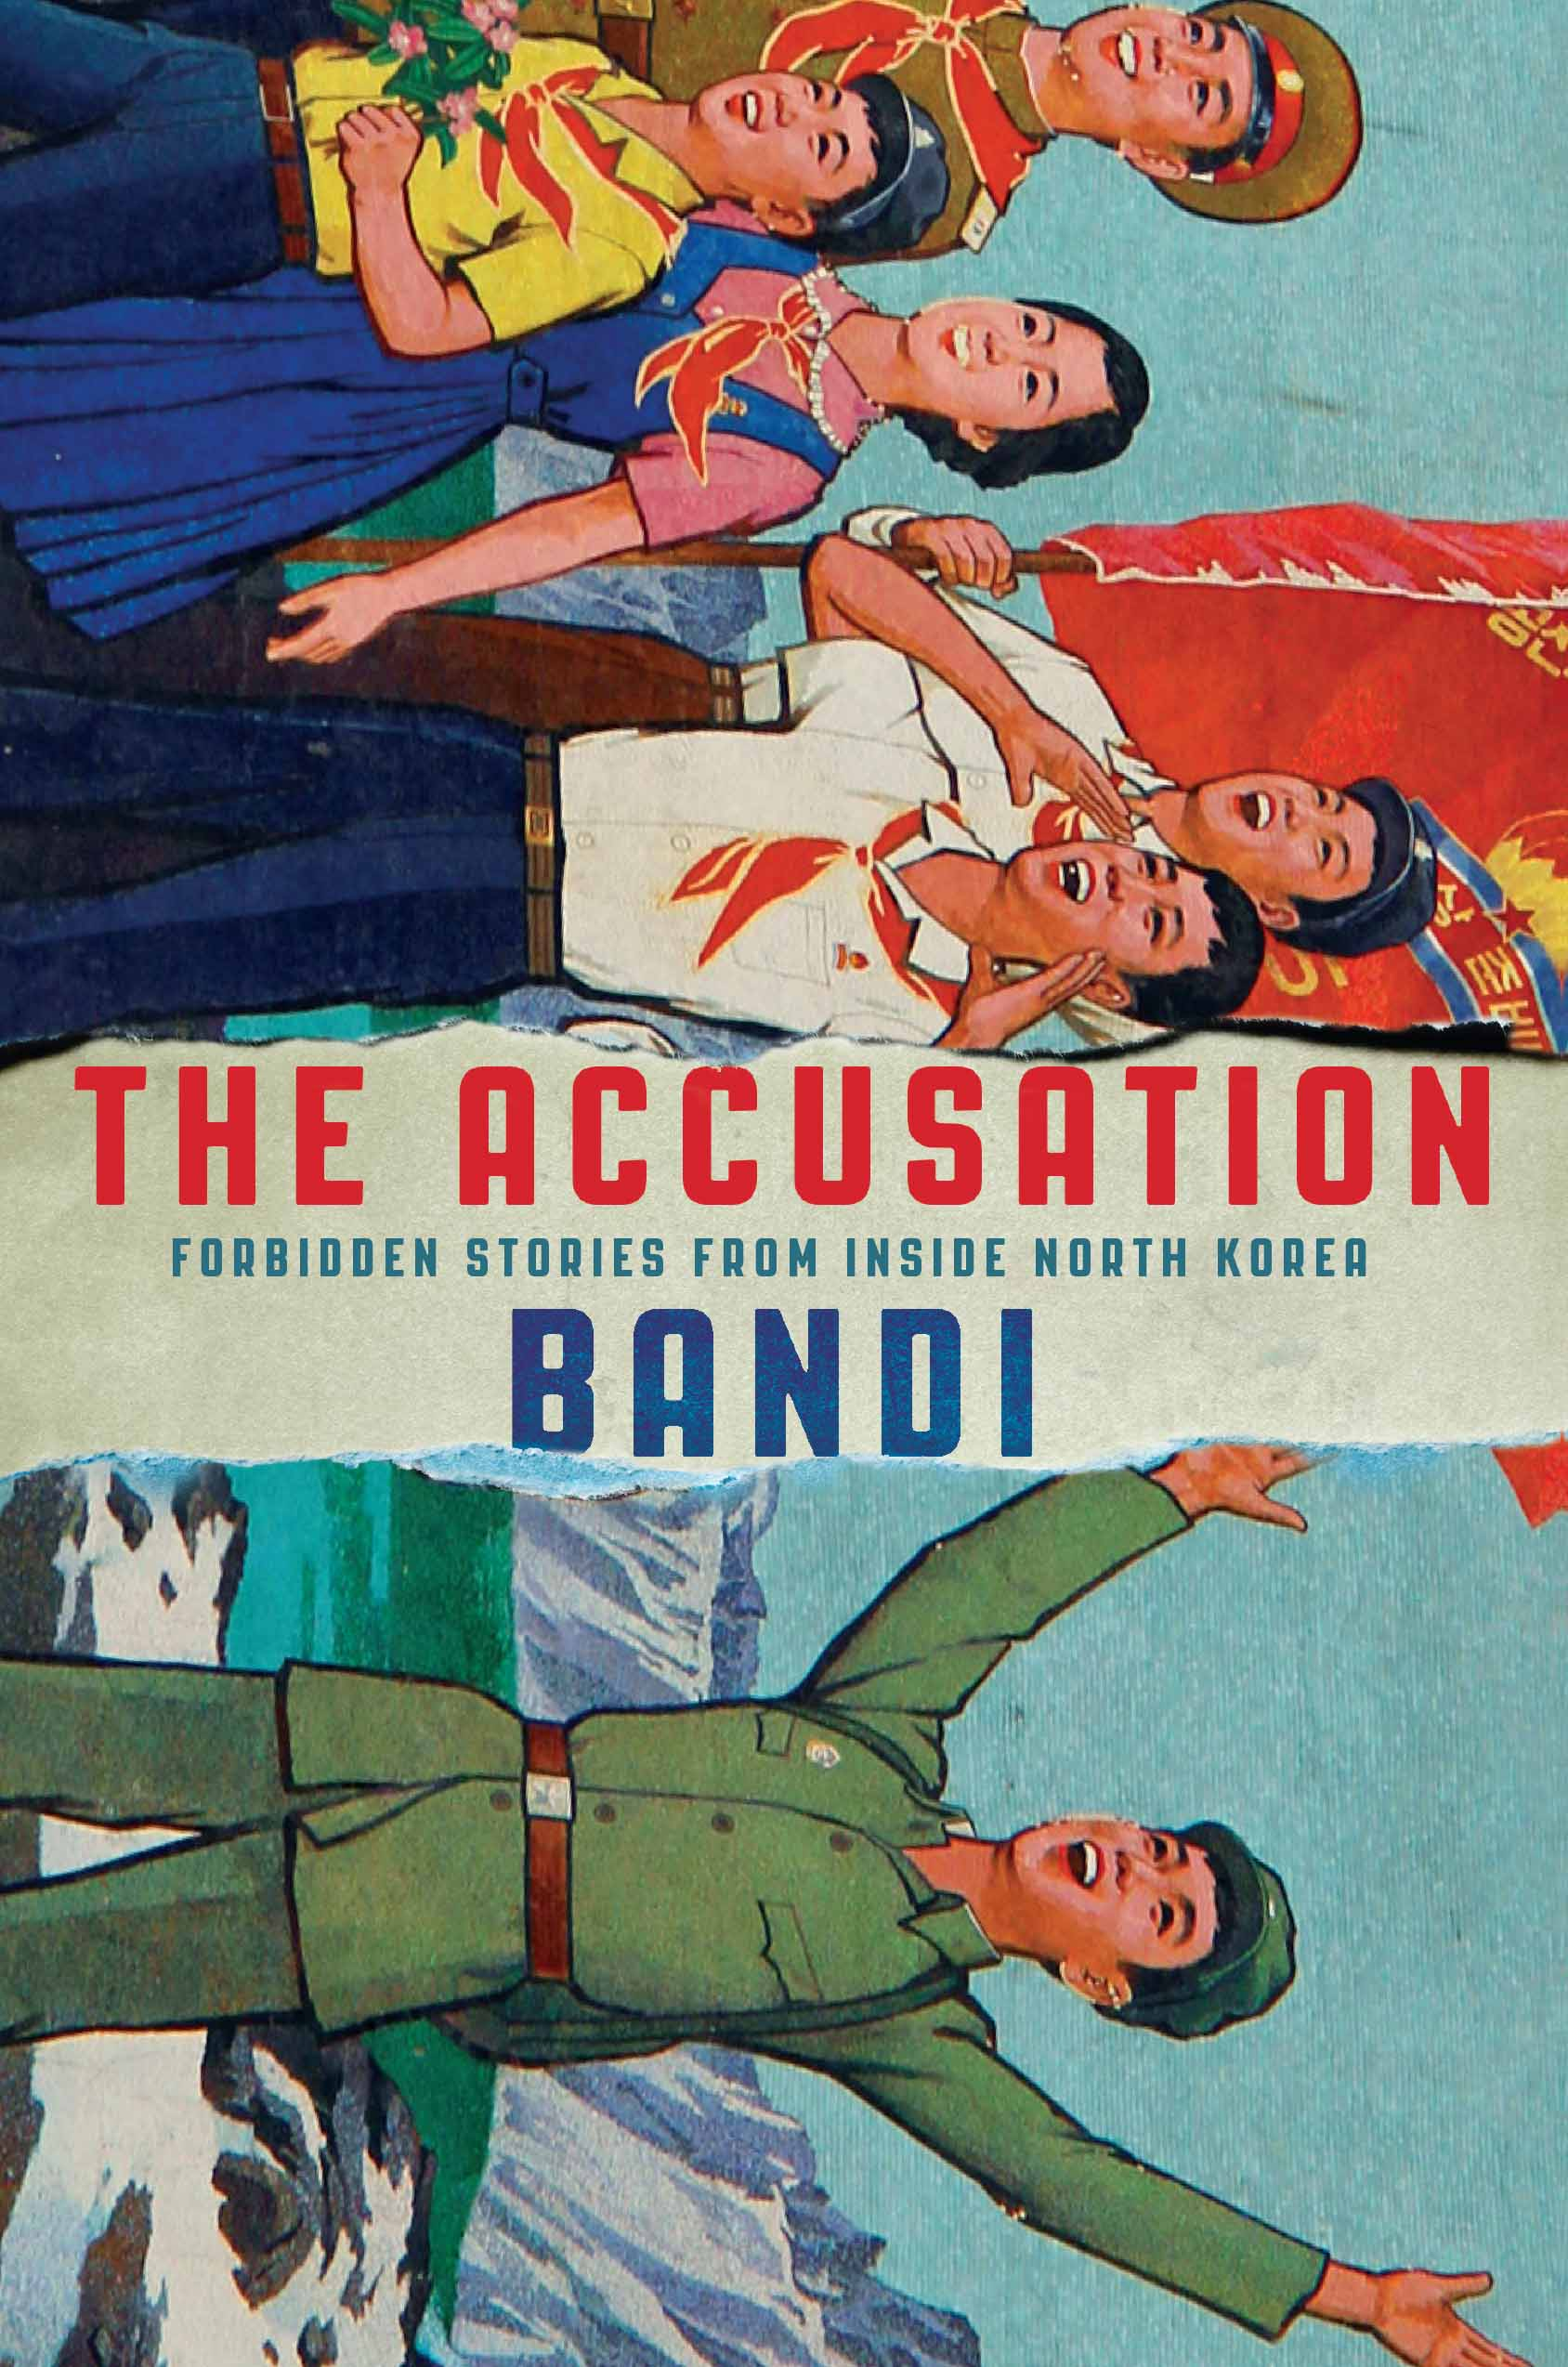 The Accusation: Forbidden Stories from Inside North Korea, by Bandi